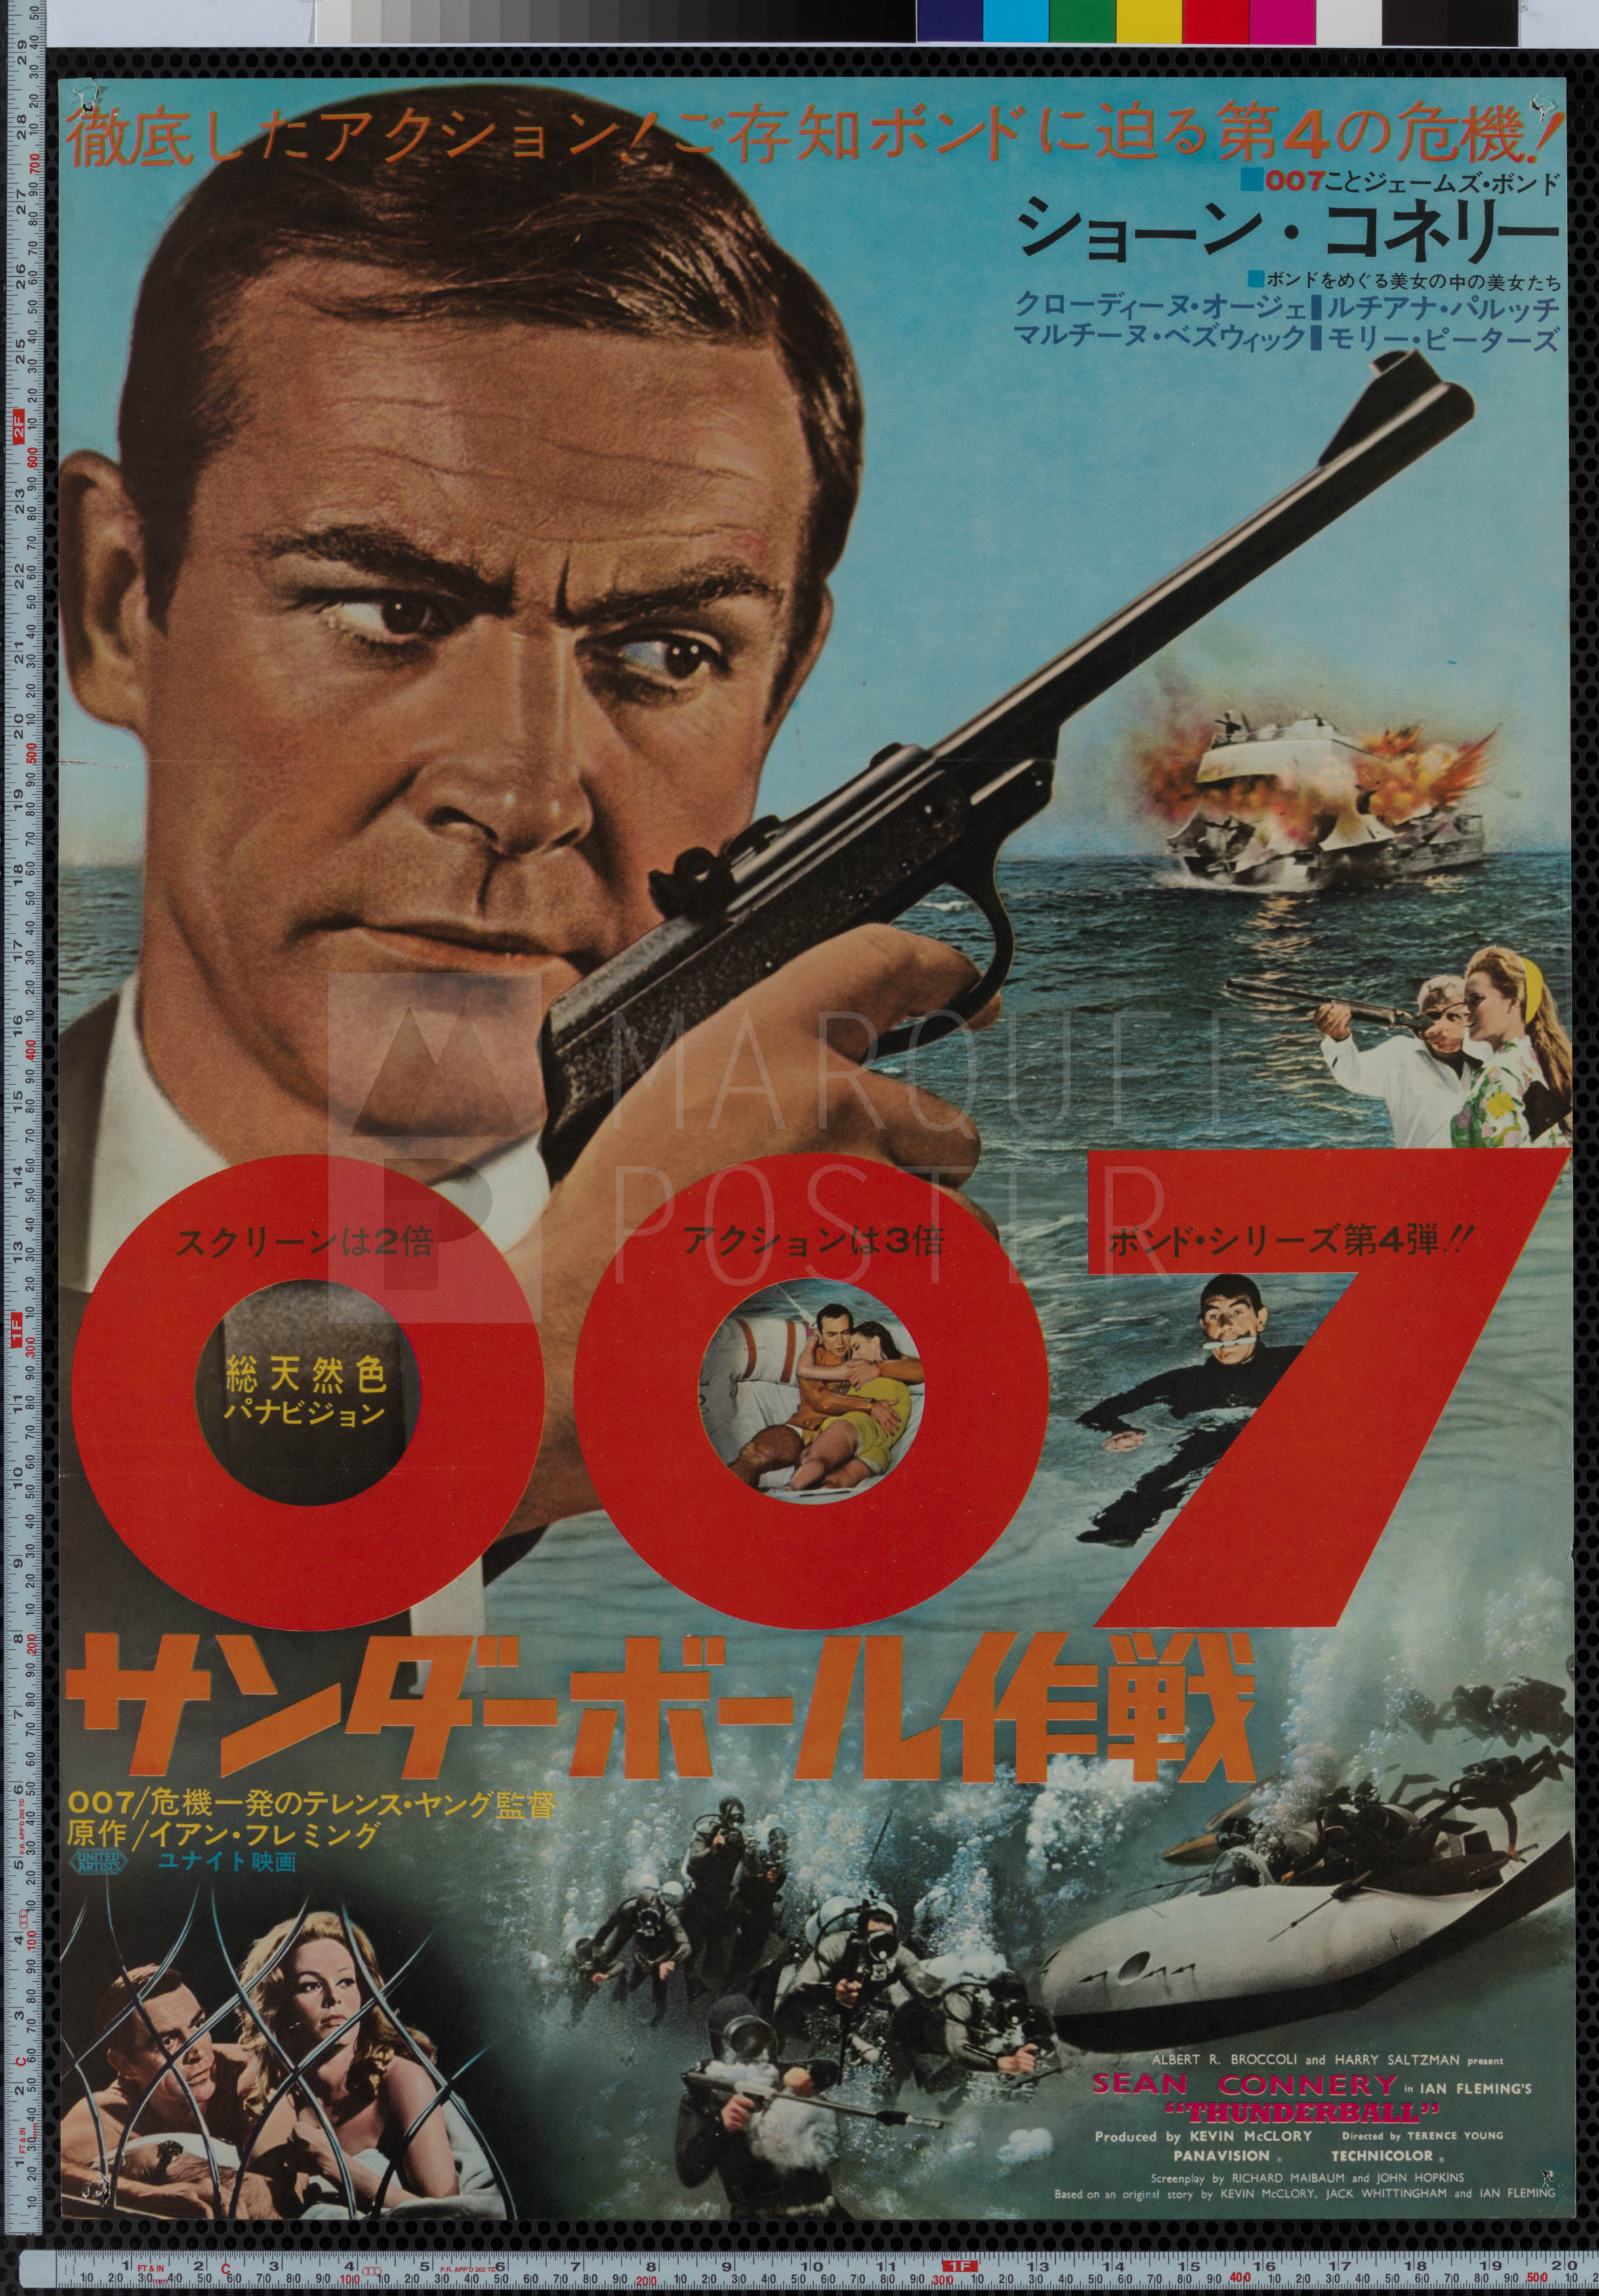 7-thunderball-large-bond-style-japanese-b2-1965-02